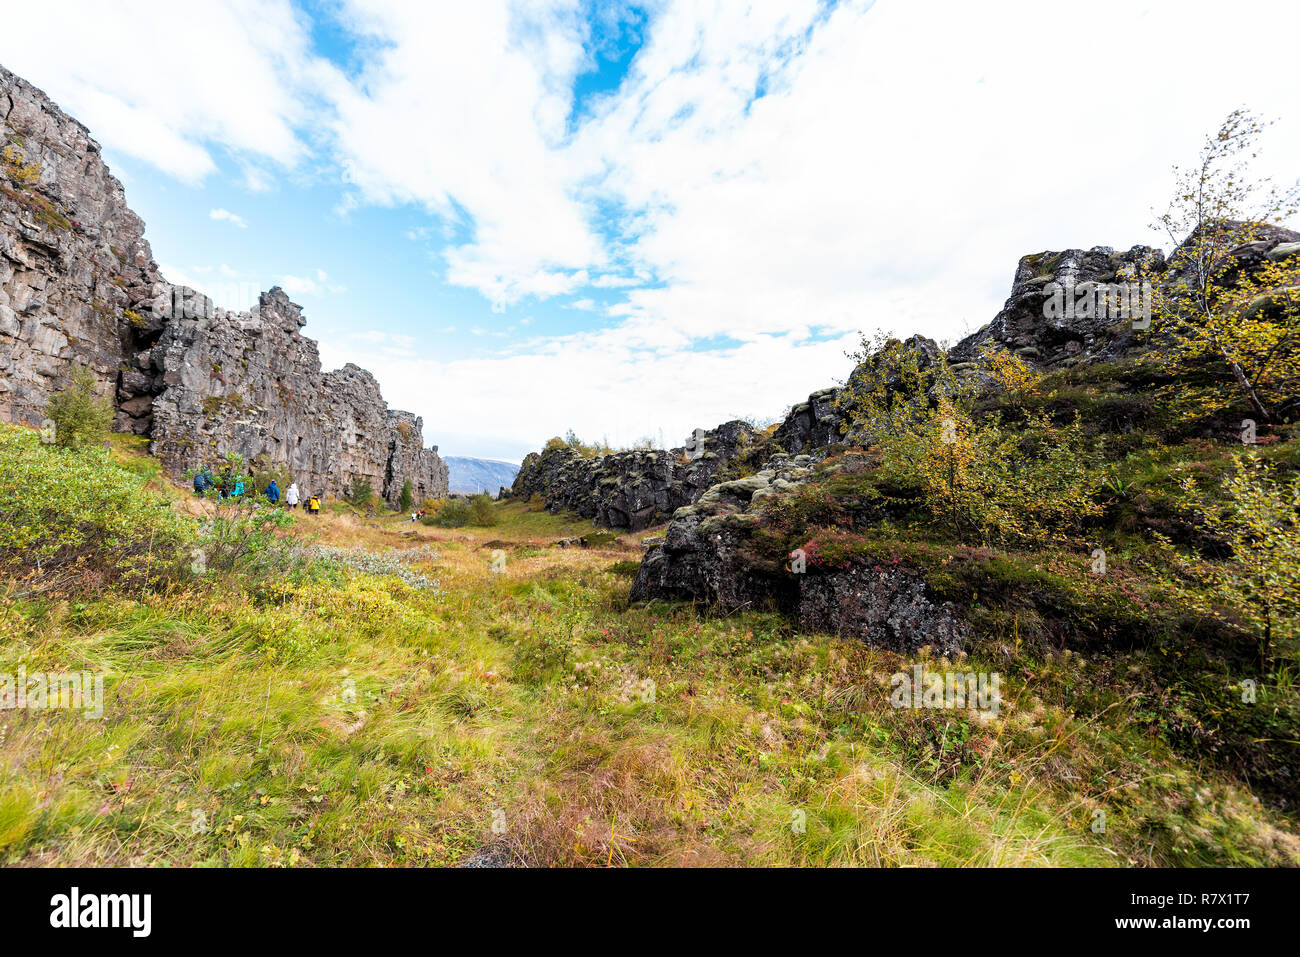 Thingvellir National Park grass autumn plants during day landscape, people walking on canyon trail in Iceland, Golden circle route Stock Photo